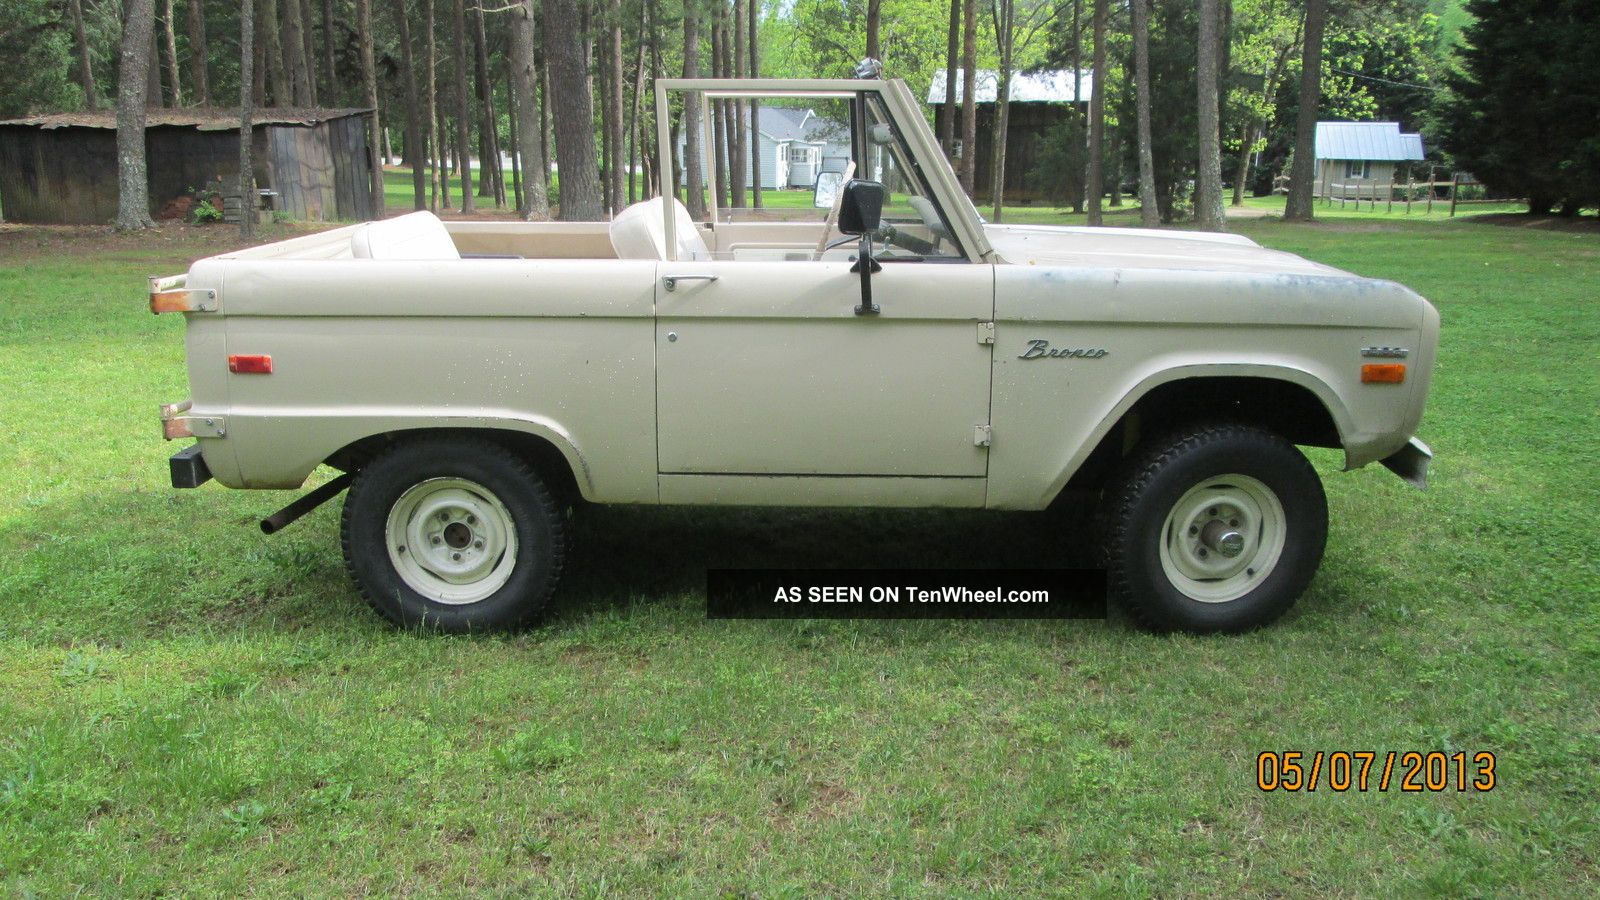 Ford bronco 1970 photo - 8